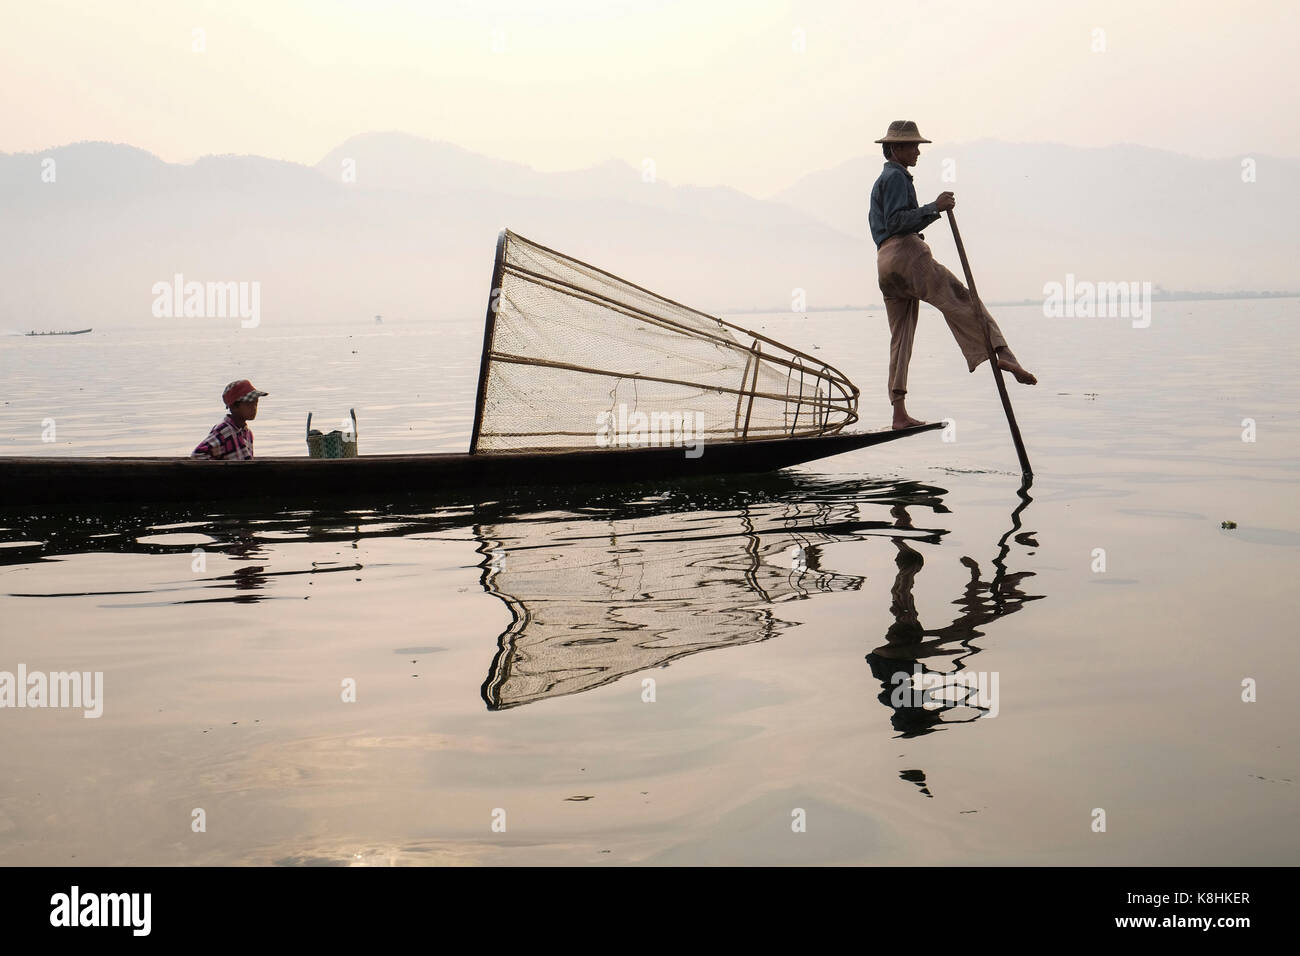 Burma, Myanmar: fisherman on a barge on Inle Lake. Fisherman with his son on a barge and cone-shaped fish trap - Stock Image